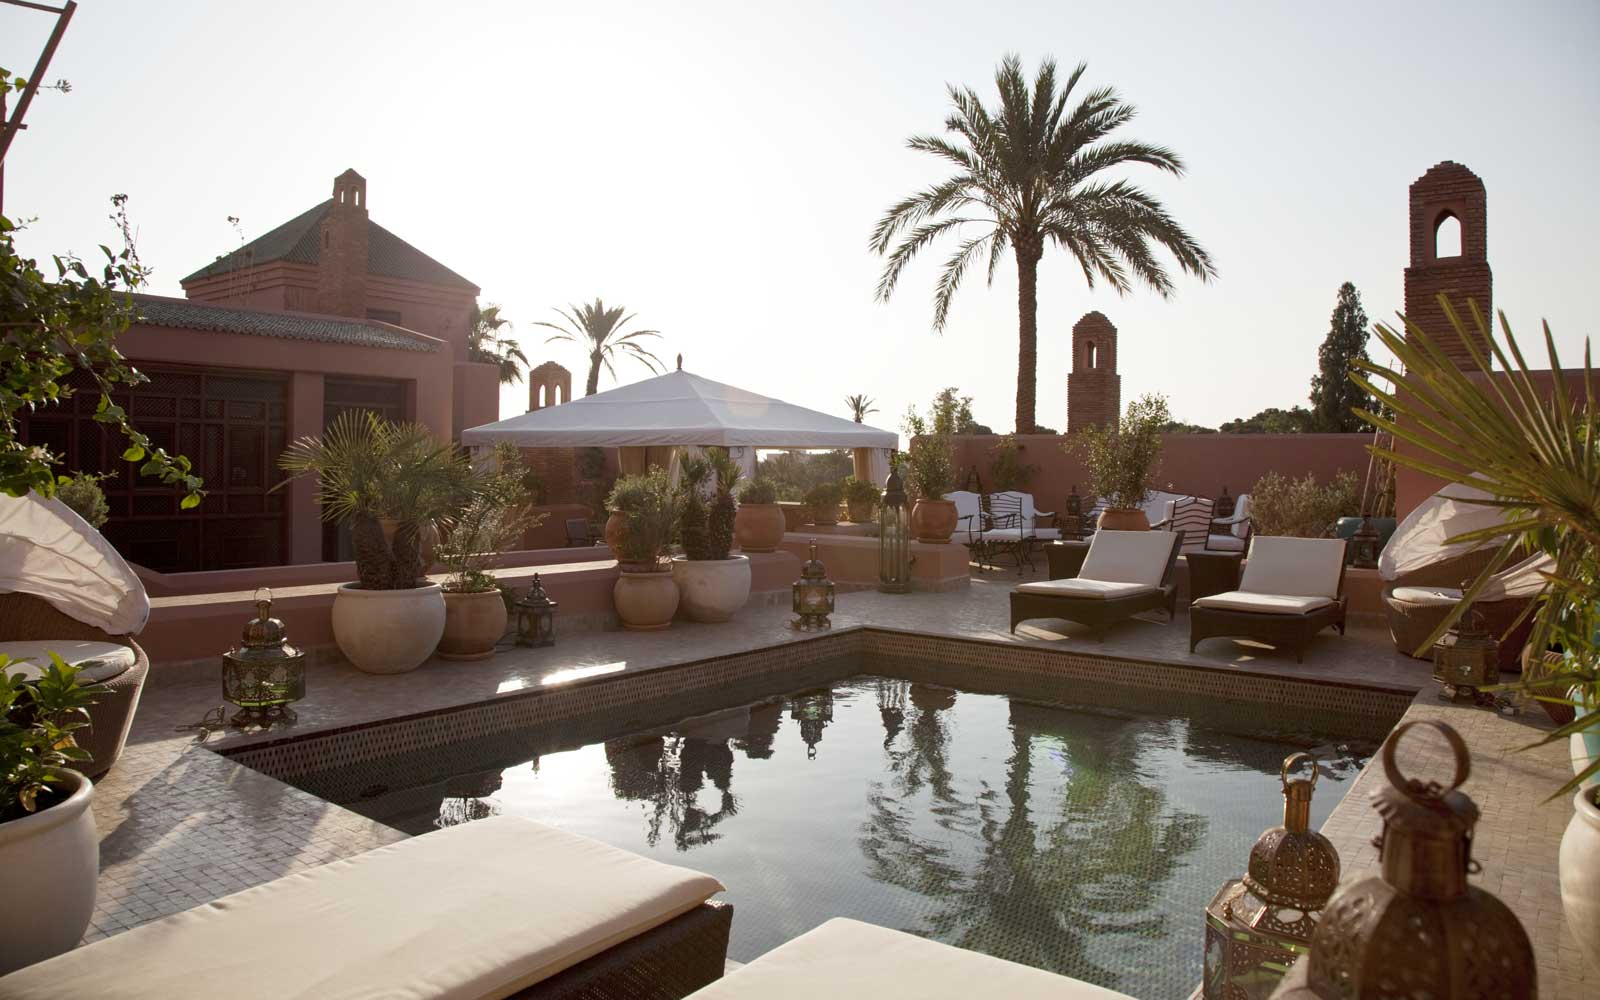 You Can Live Like Royalty at This Marrakech Hotel Dreamed up by the King of Morocco